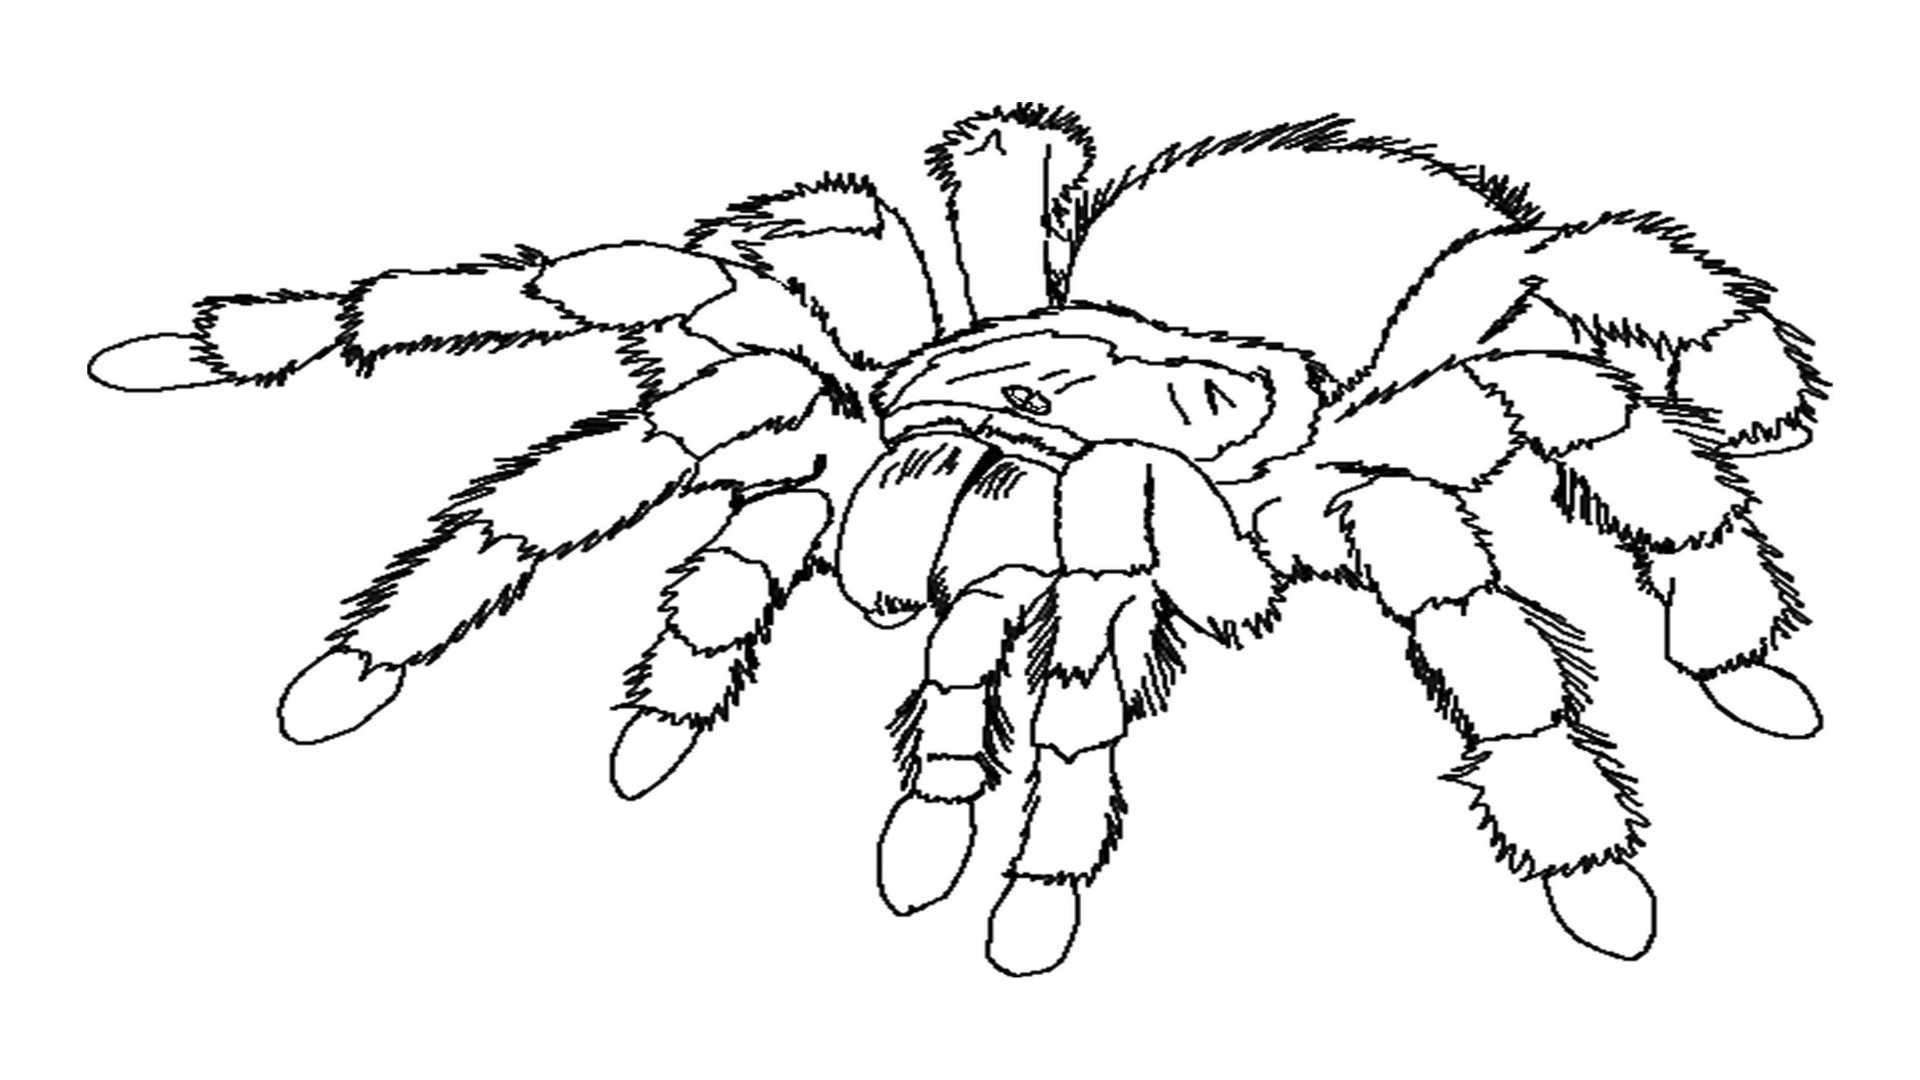 spider coloring pages to download and print for free - Spider Coloring Book